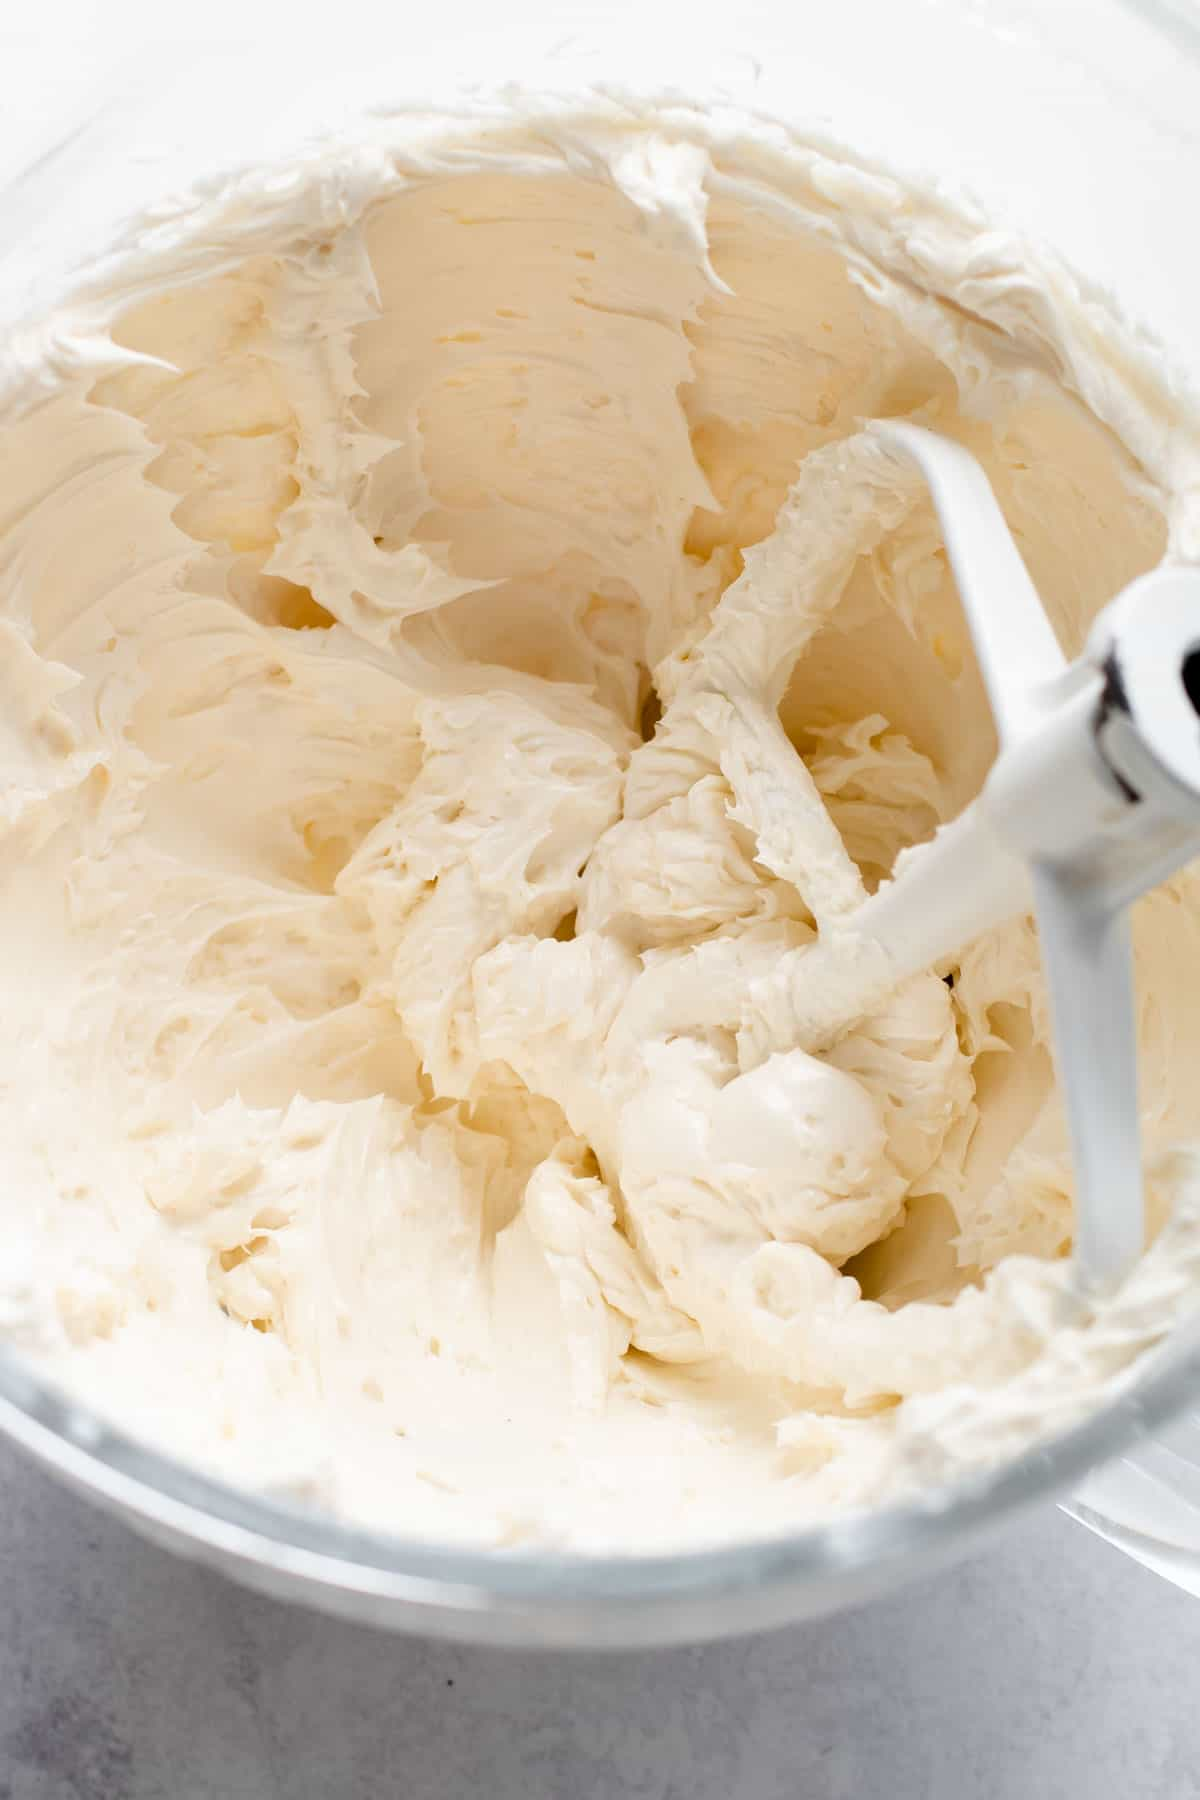 Whipped buttercream in a mixing bowl.